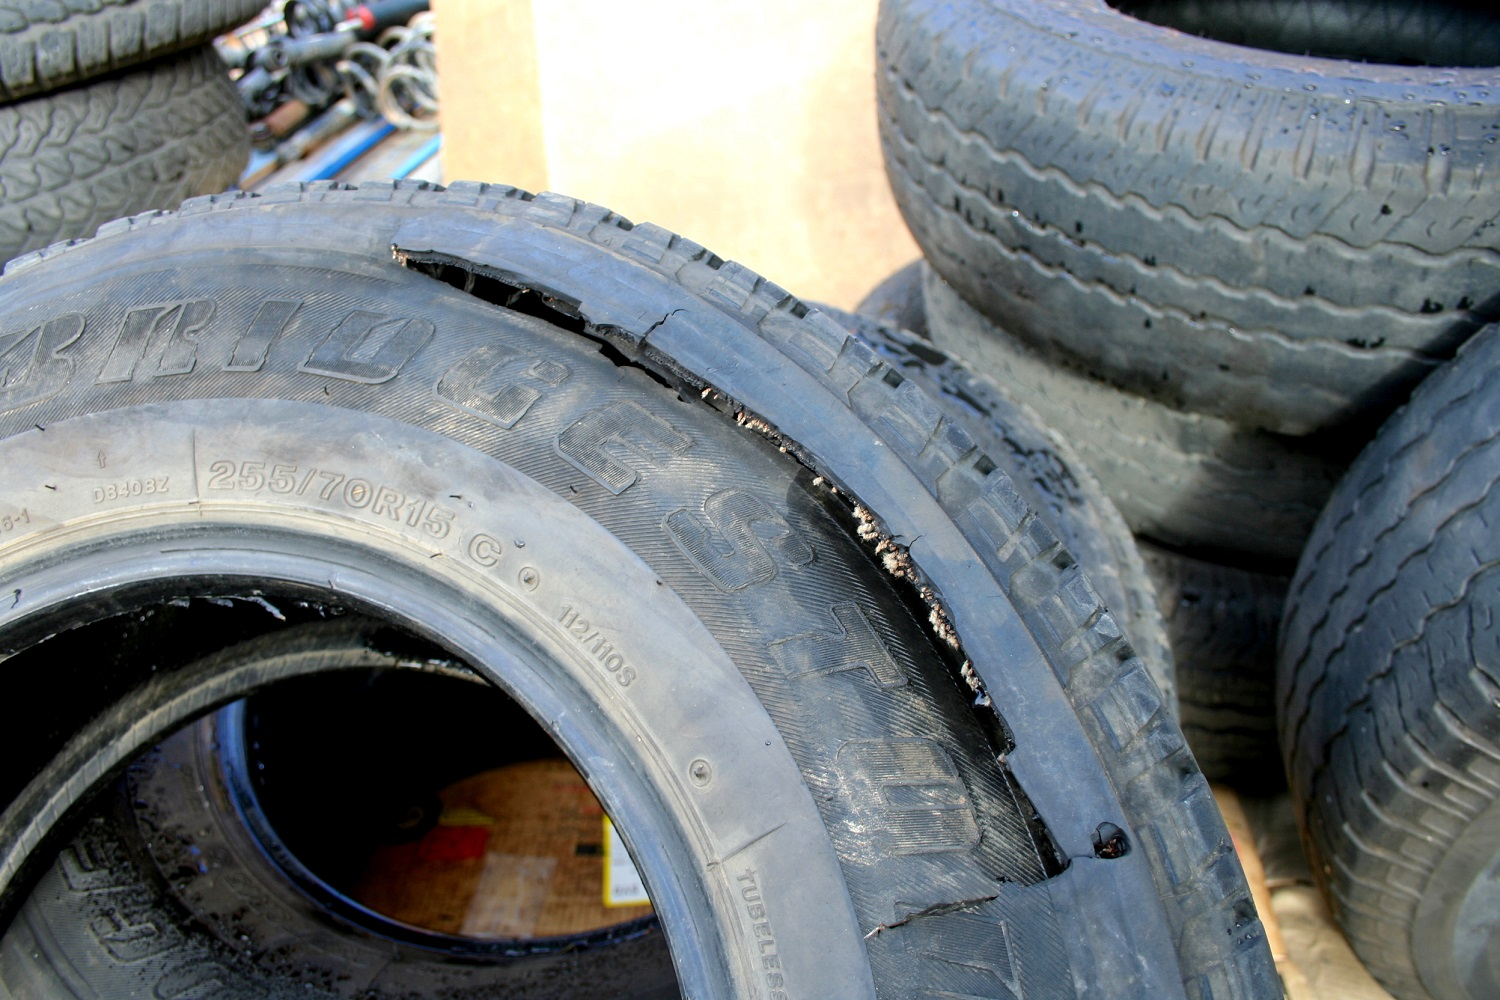 Tyres Can Blow Out For A Number Of Reasons, But Incorrect Pressure Or Too Old Tyres Are The Main Ones